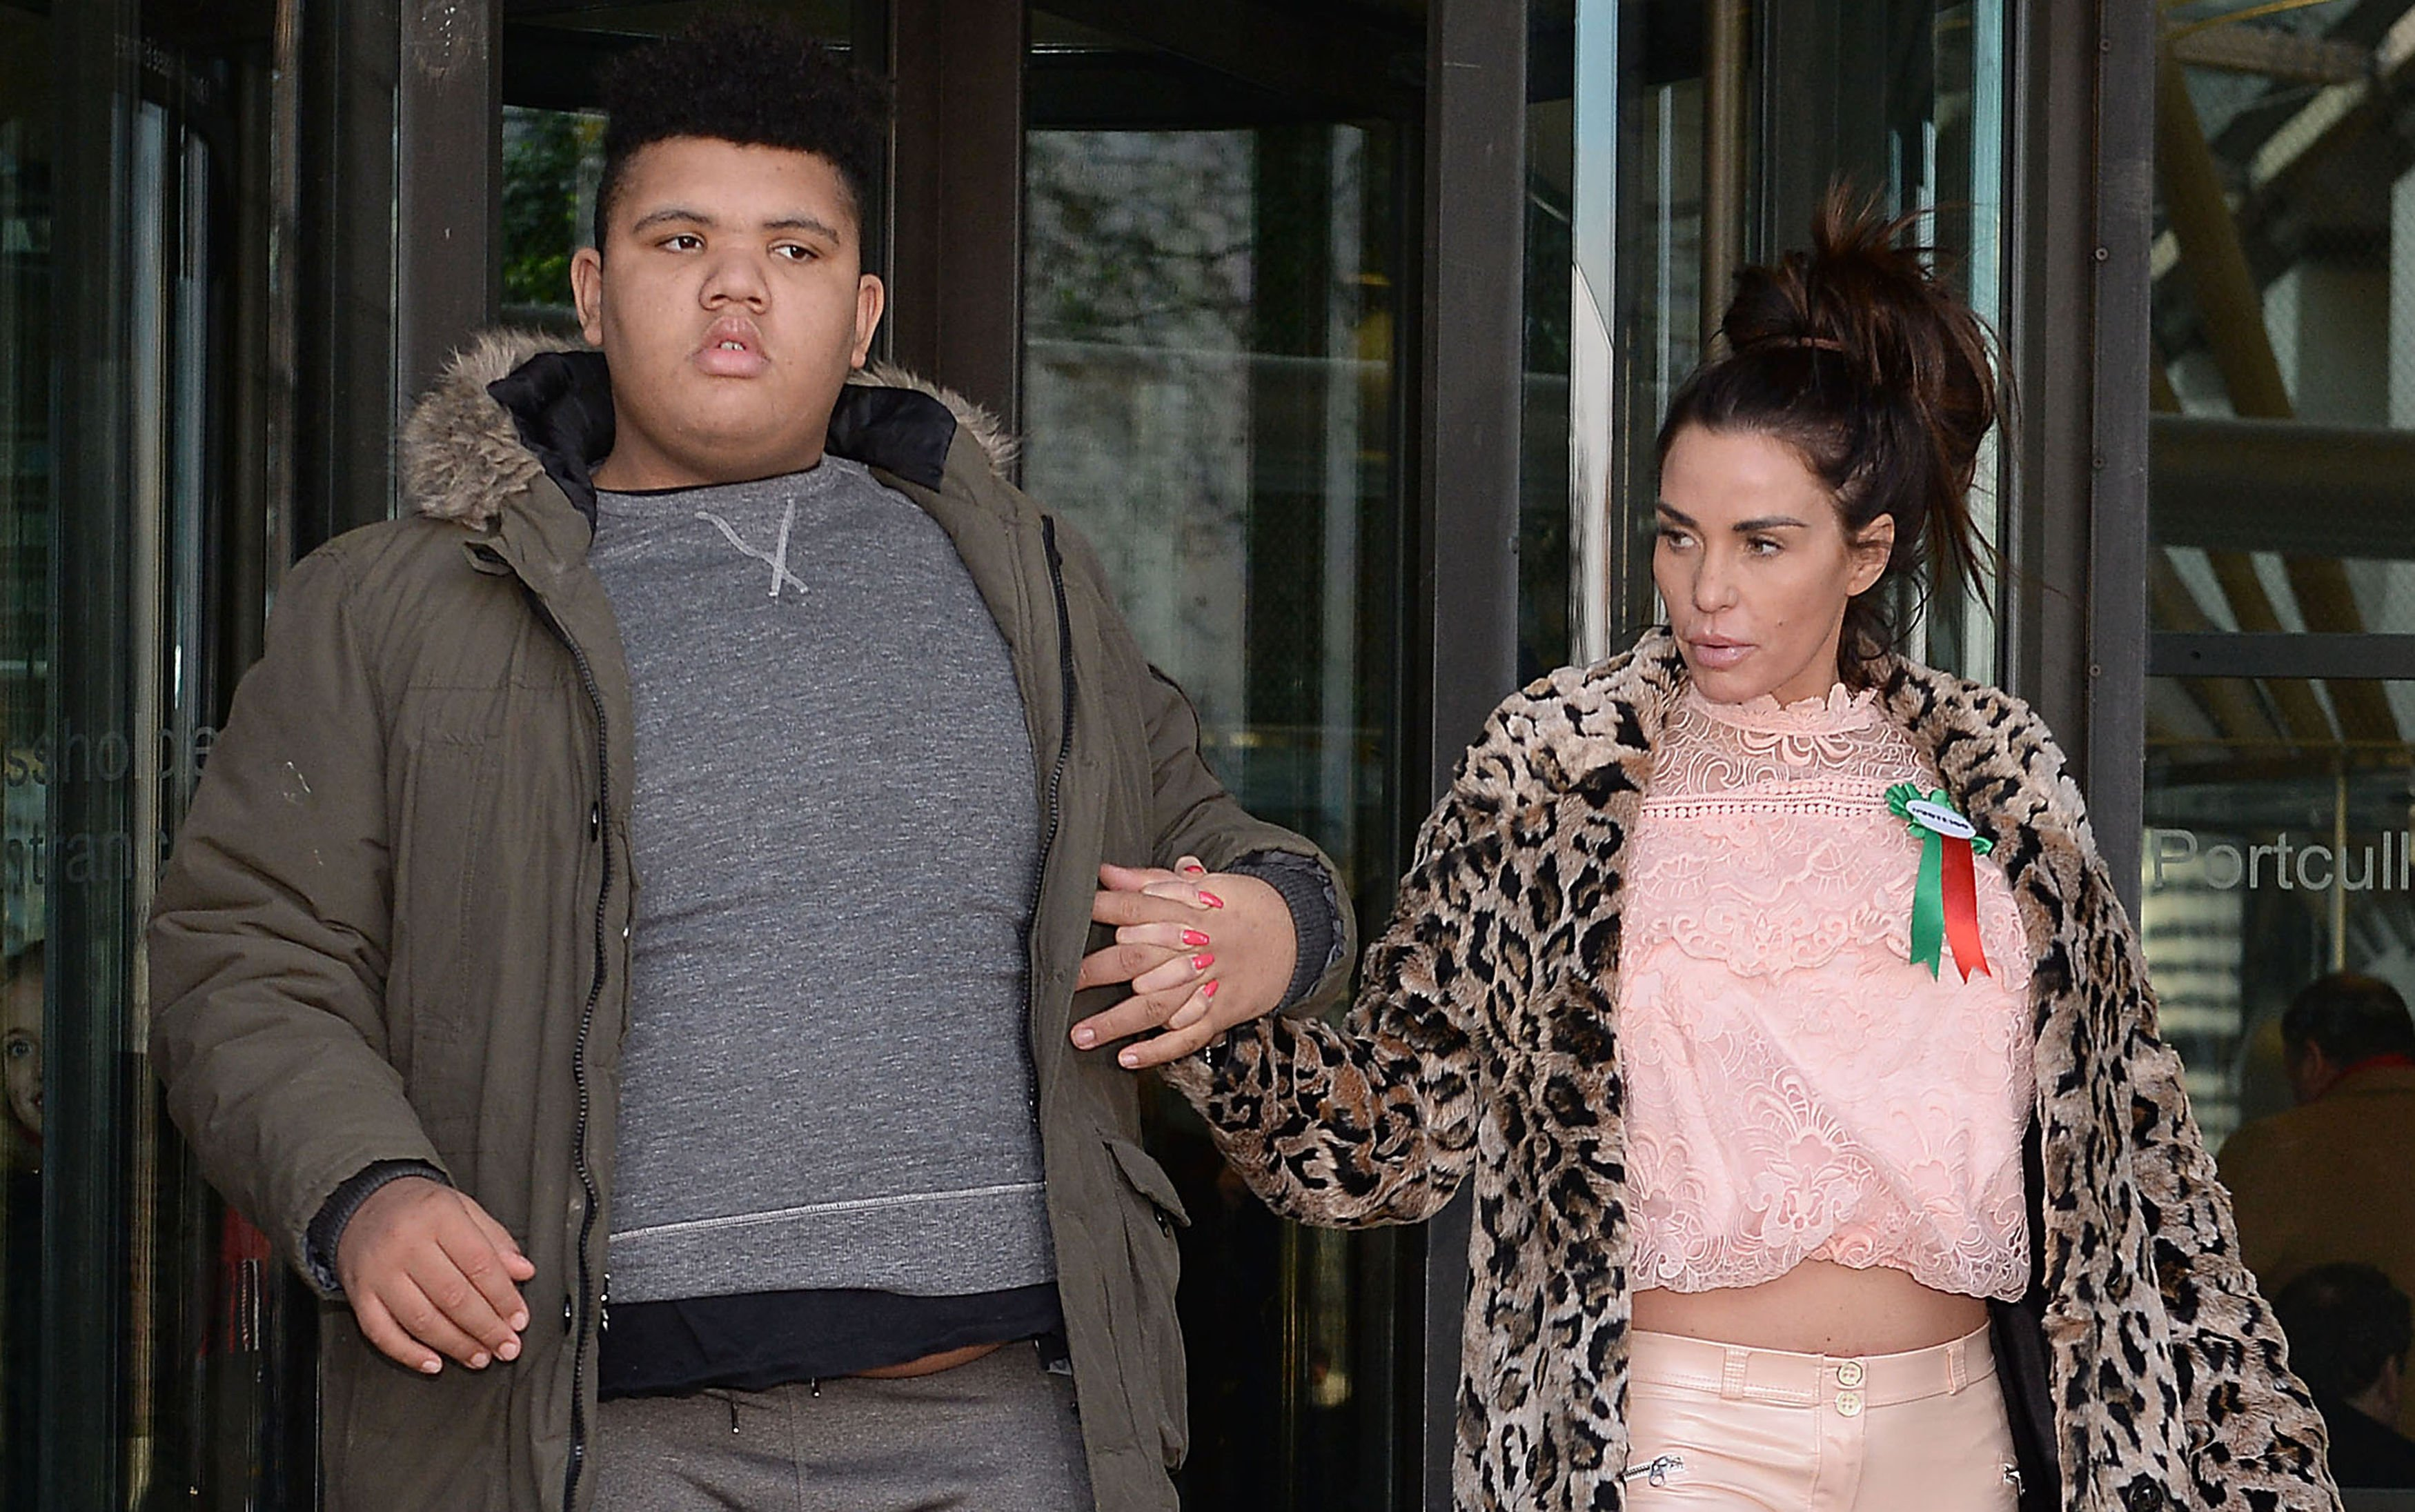 Katie Price and her son, Harvey pictured leaving Portcullis House in London, 2018. | Photo: Getty Images